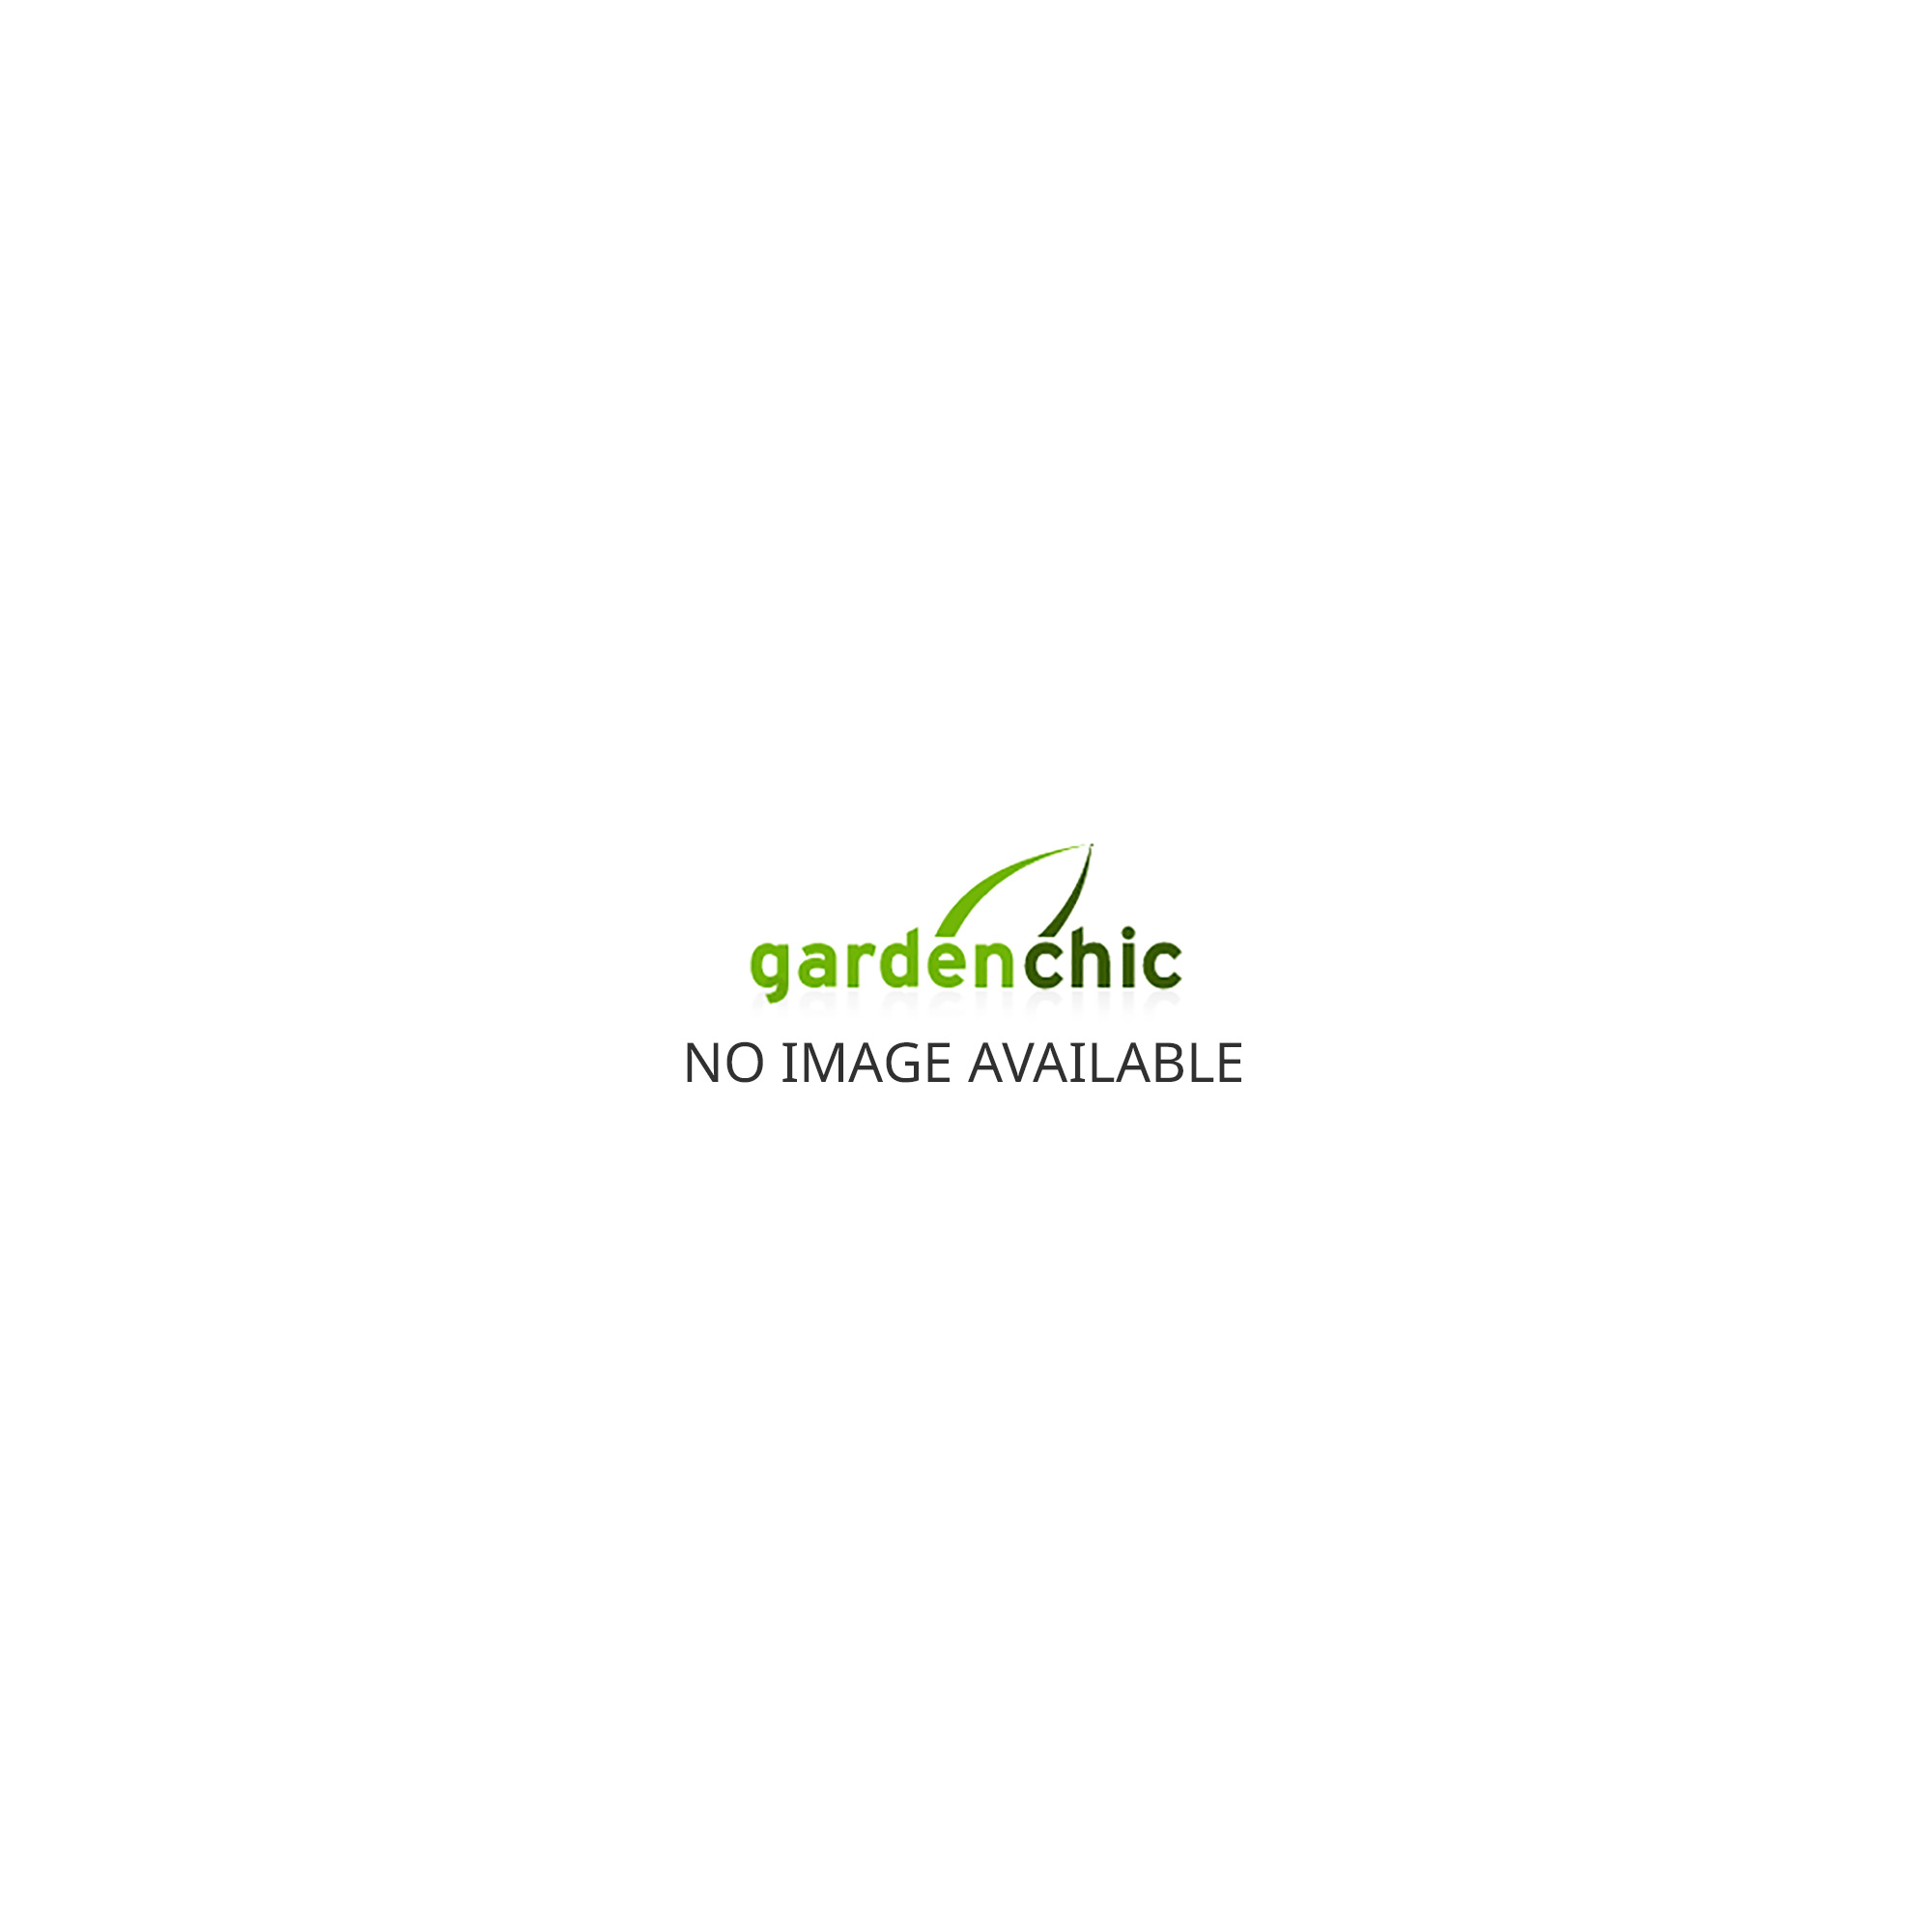 Venus 7500 6ft x 12ft Greenhouse - Silver FREE Matching Base until APRIL 2018